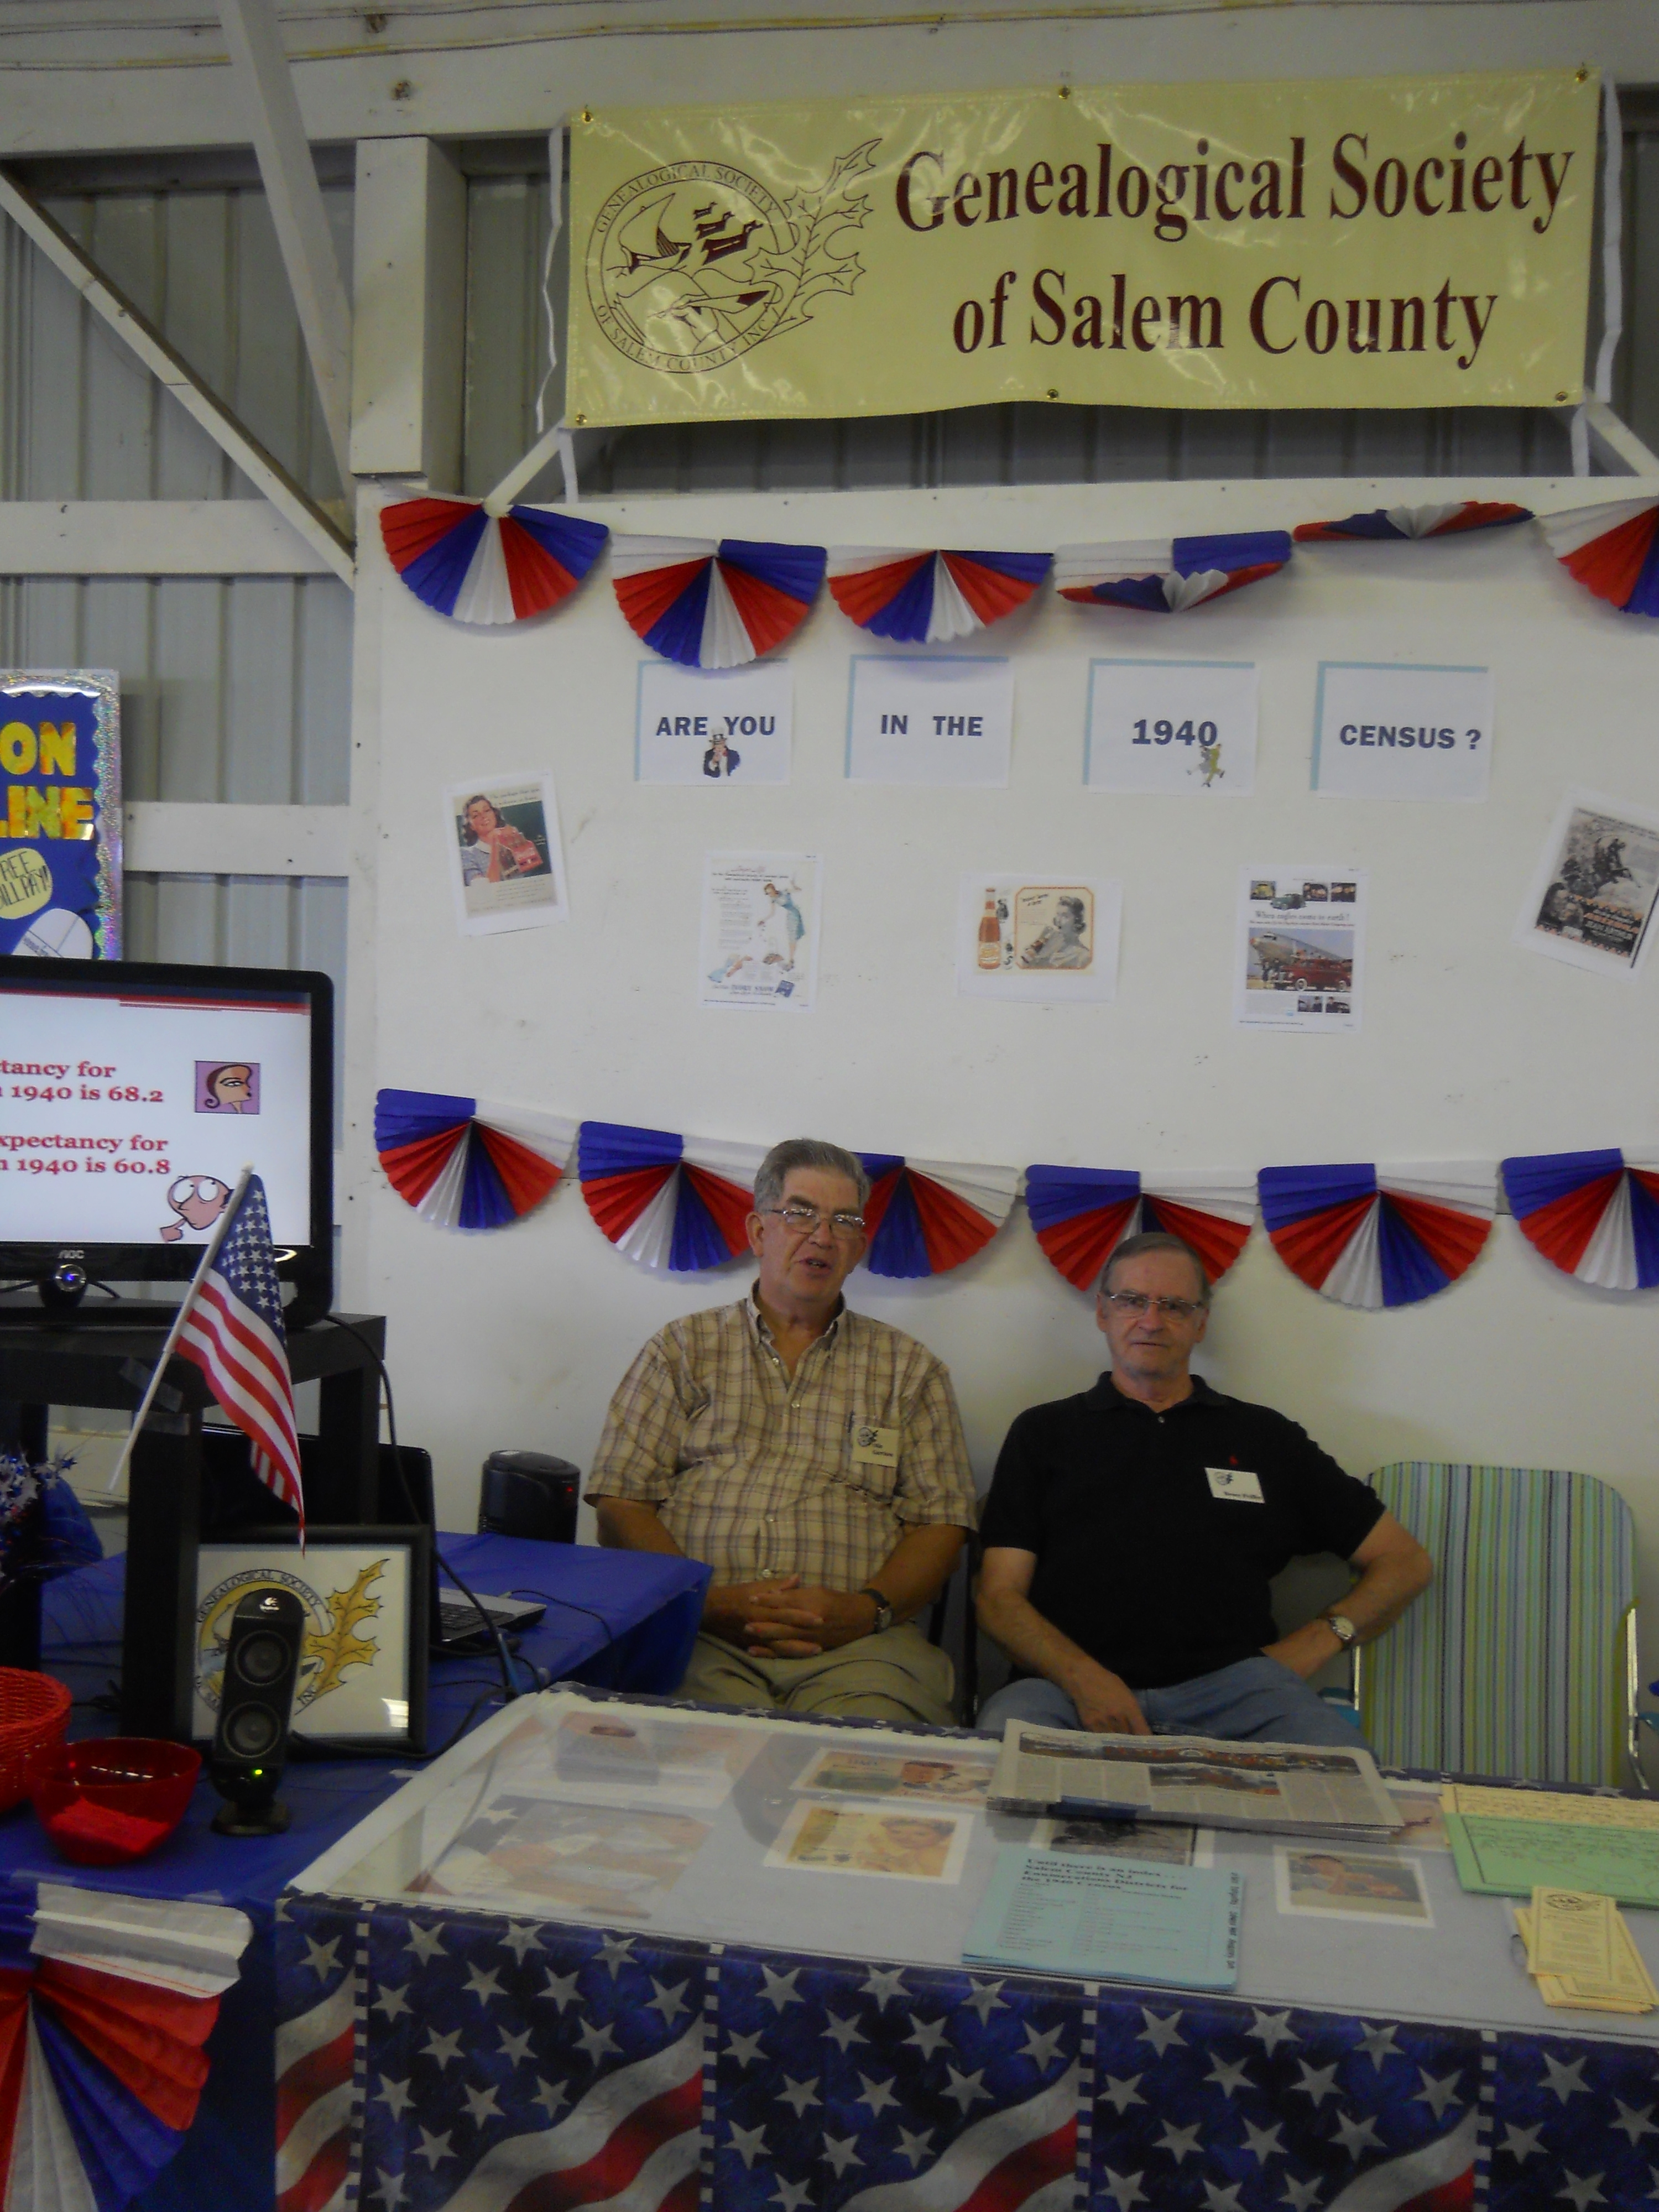 Two members pose at the Genealogical Society's 1940s Census themed booth